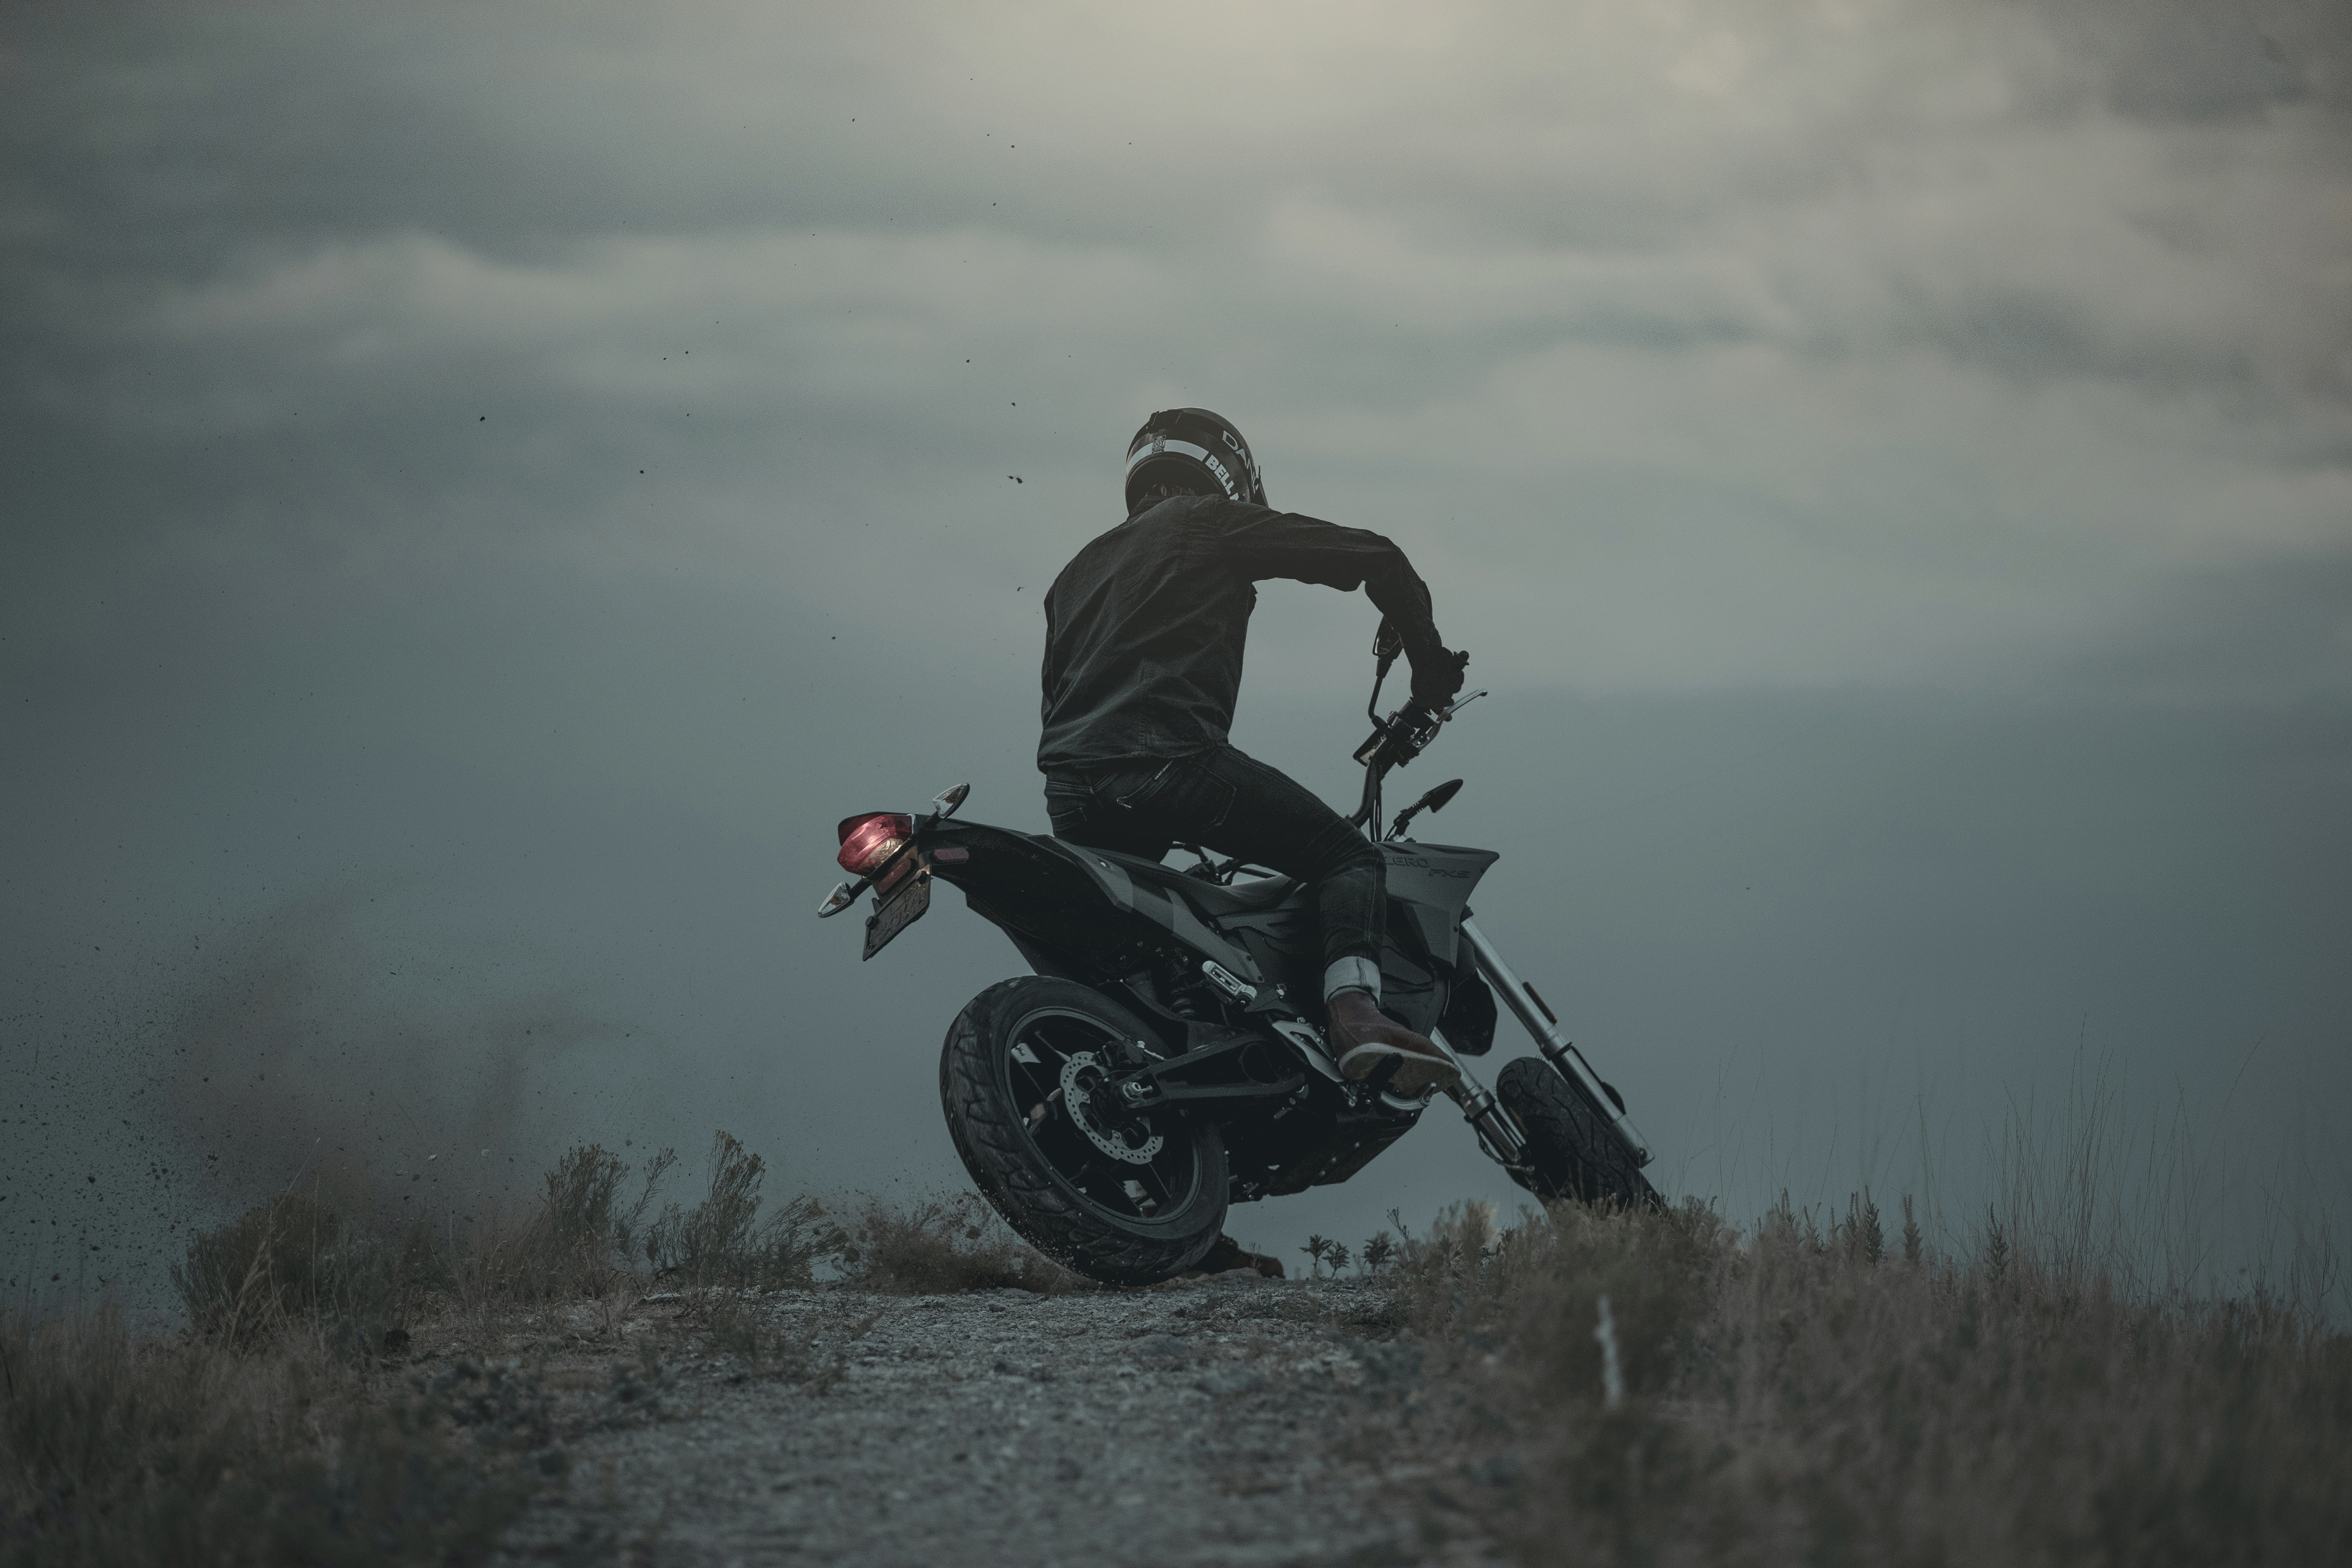 2019 Zero FXS Electric Motorcycle: